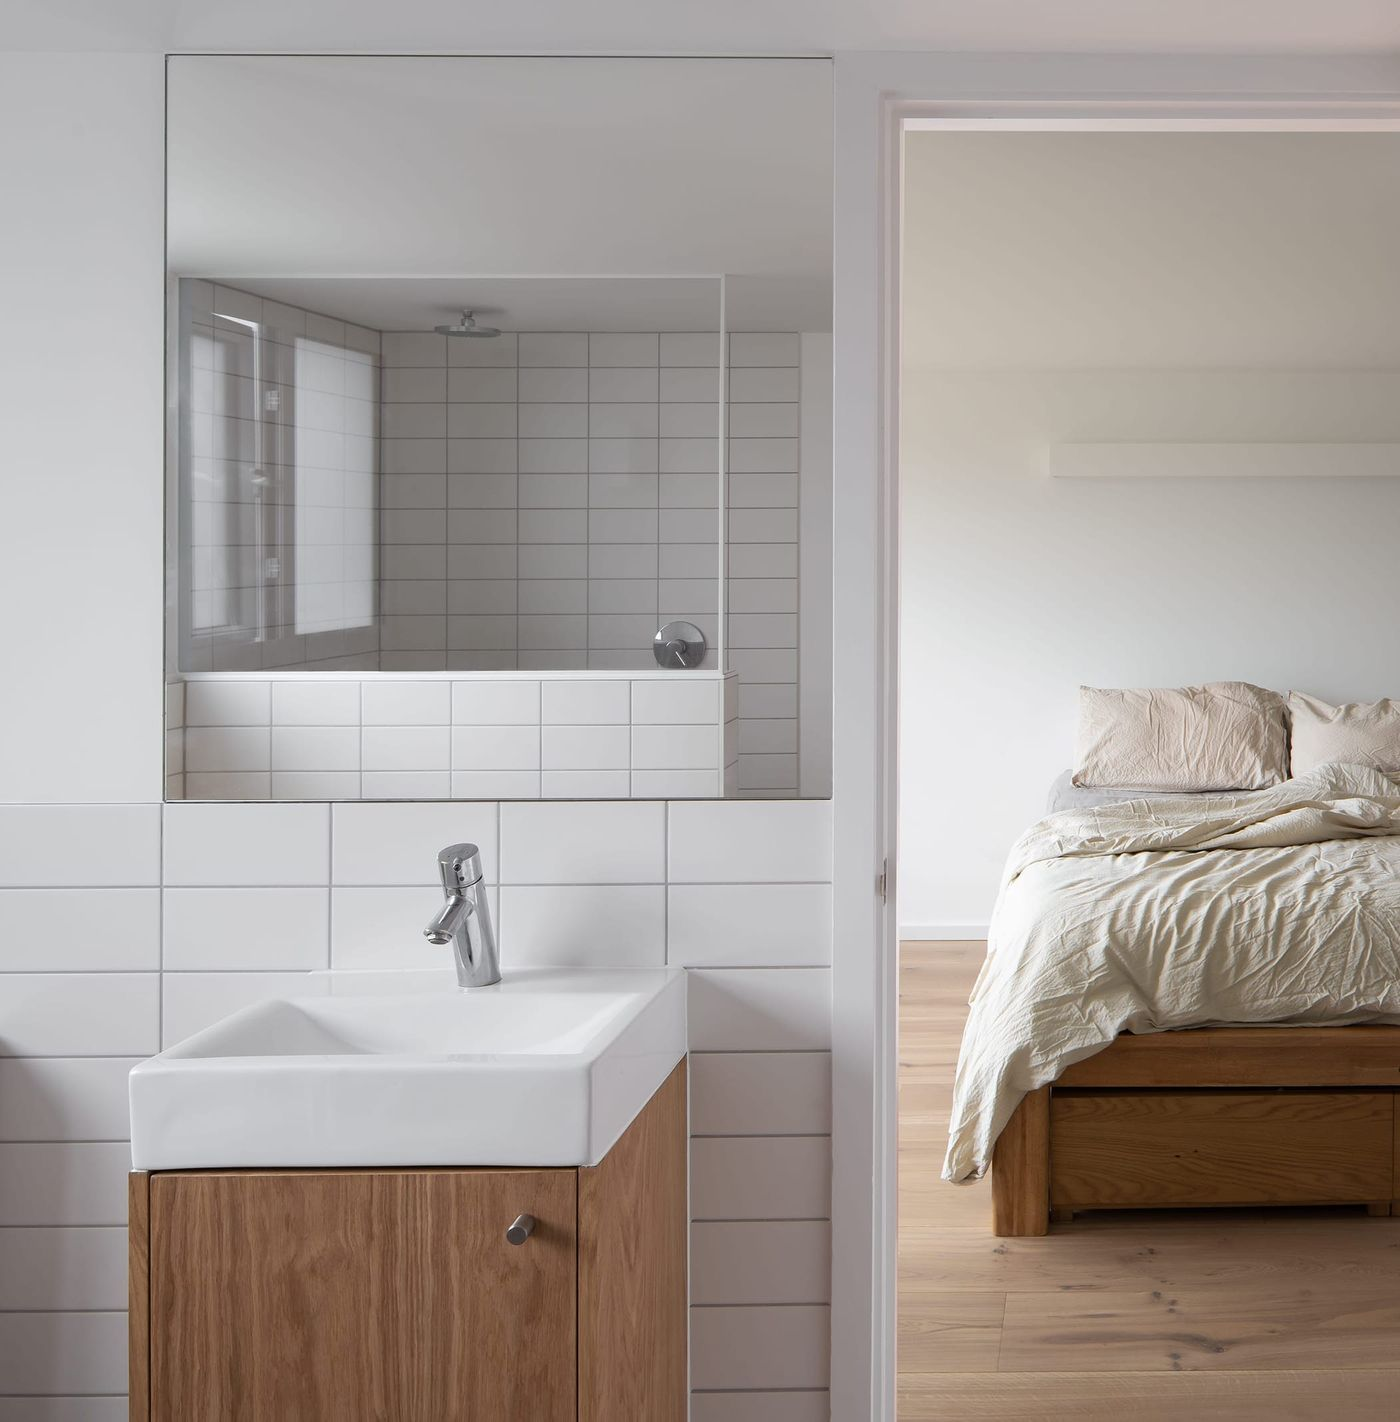 Ensuite bathroom and master bedroom suite within From Works loft conversion and rear dormer extension in Blackheath, London.